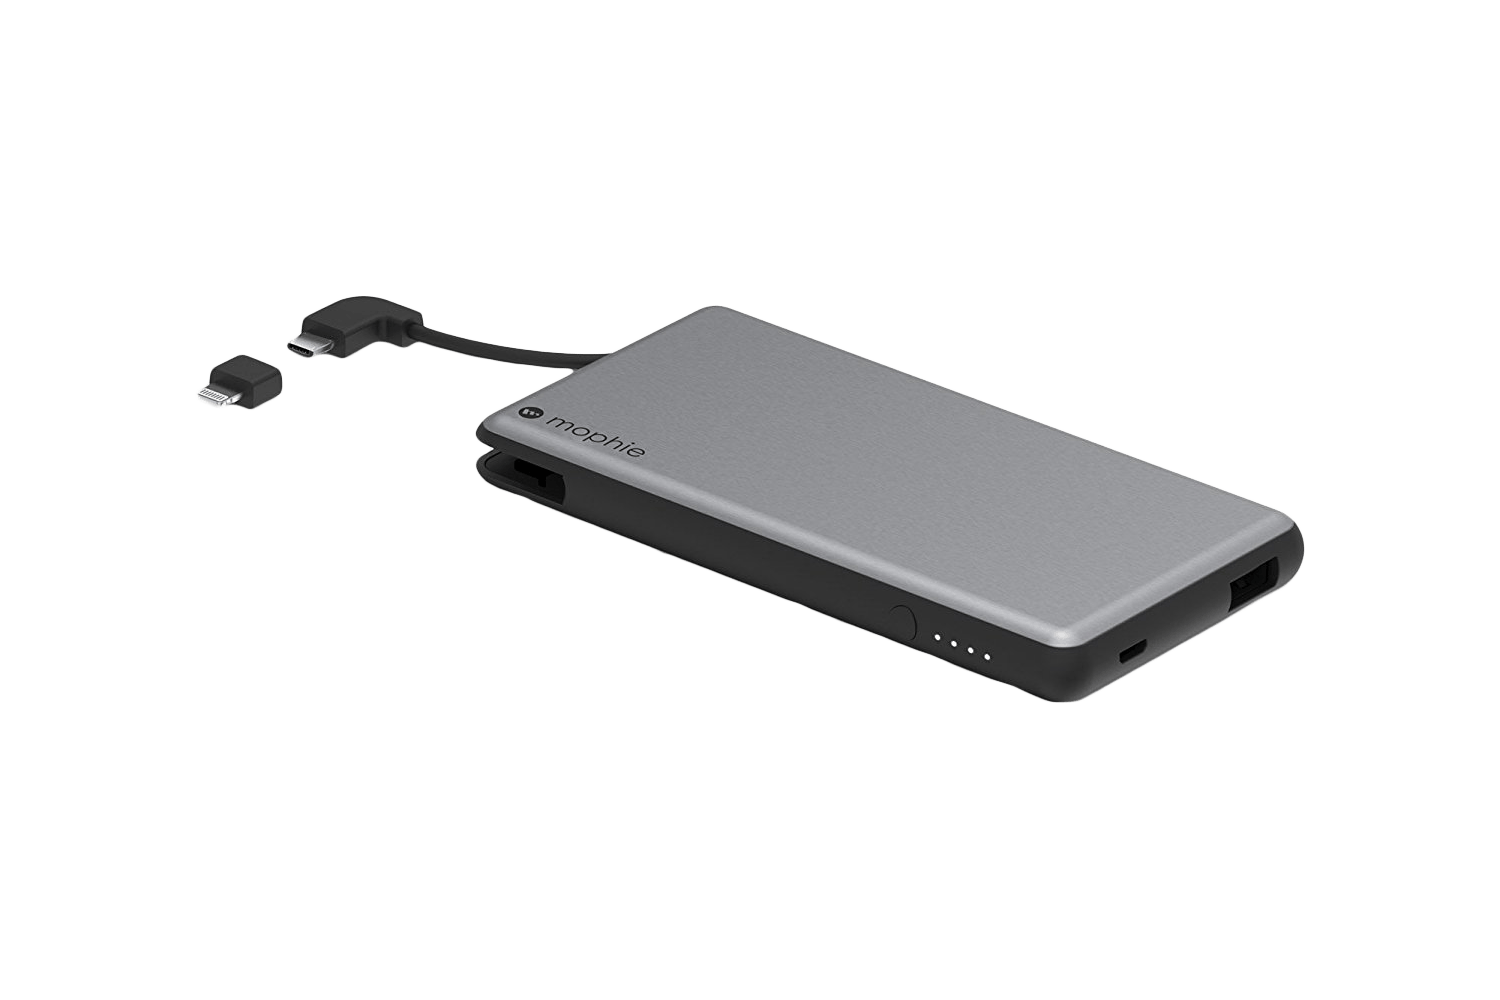 Phone Portable Phone Charger For Android the 30 best portable battery chargers android iphone or ipad mophie powerstation plus